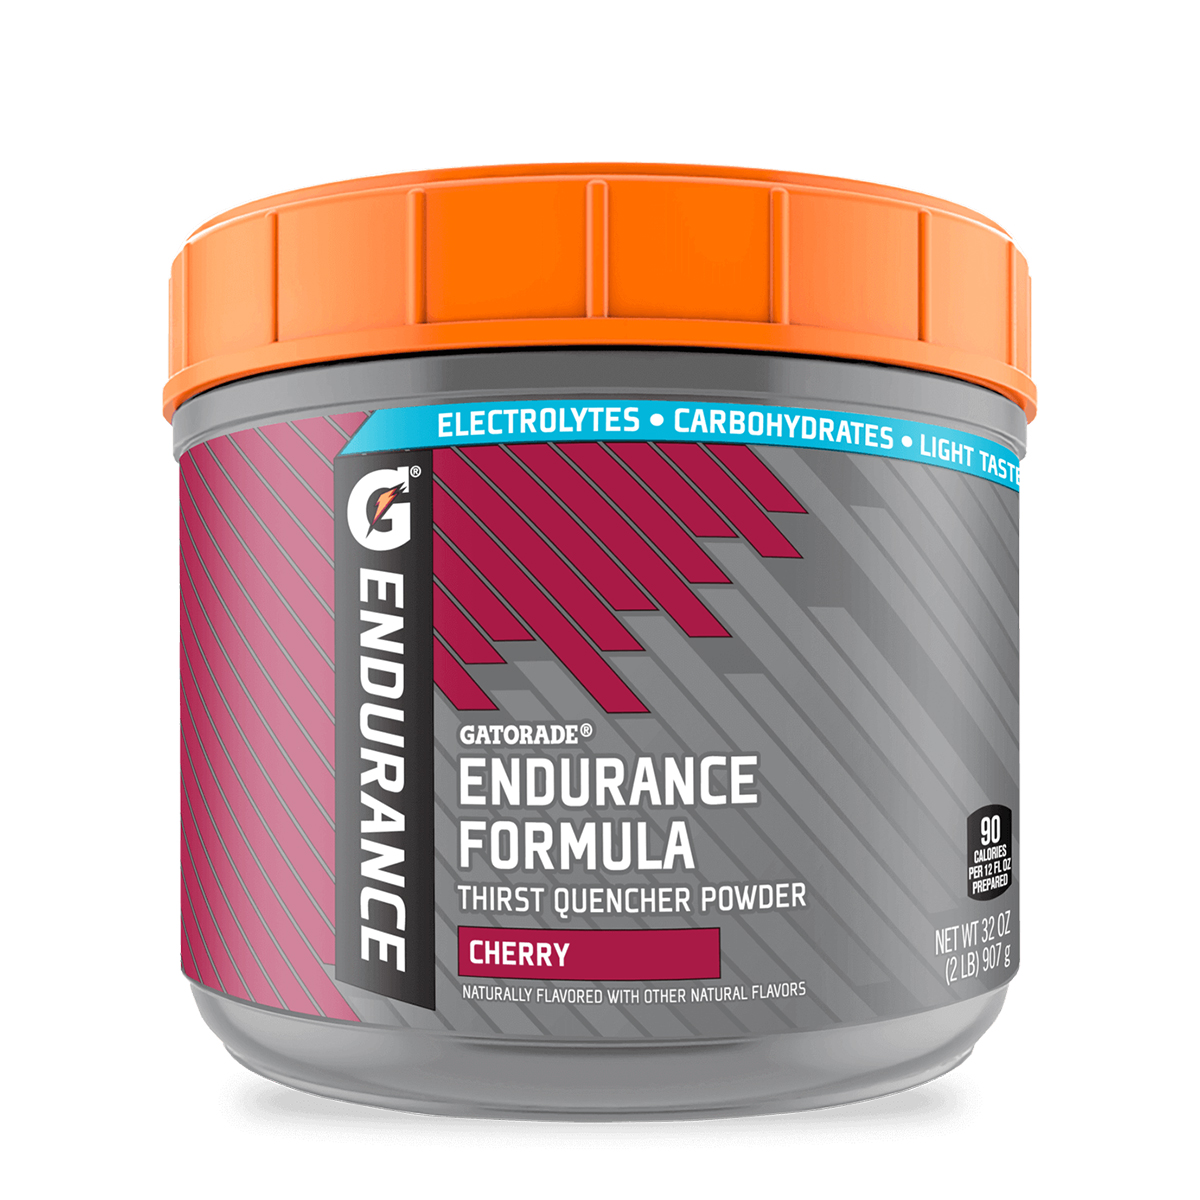 Gatorade Endurance Thirst Quencher Powder - 32oz Canister, , large, image 1